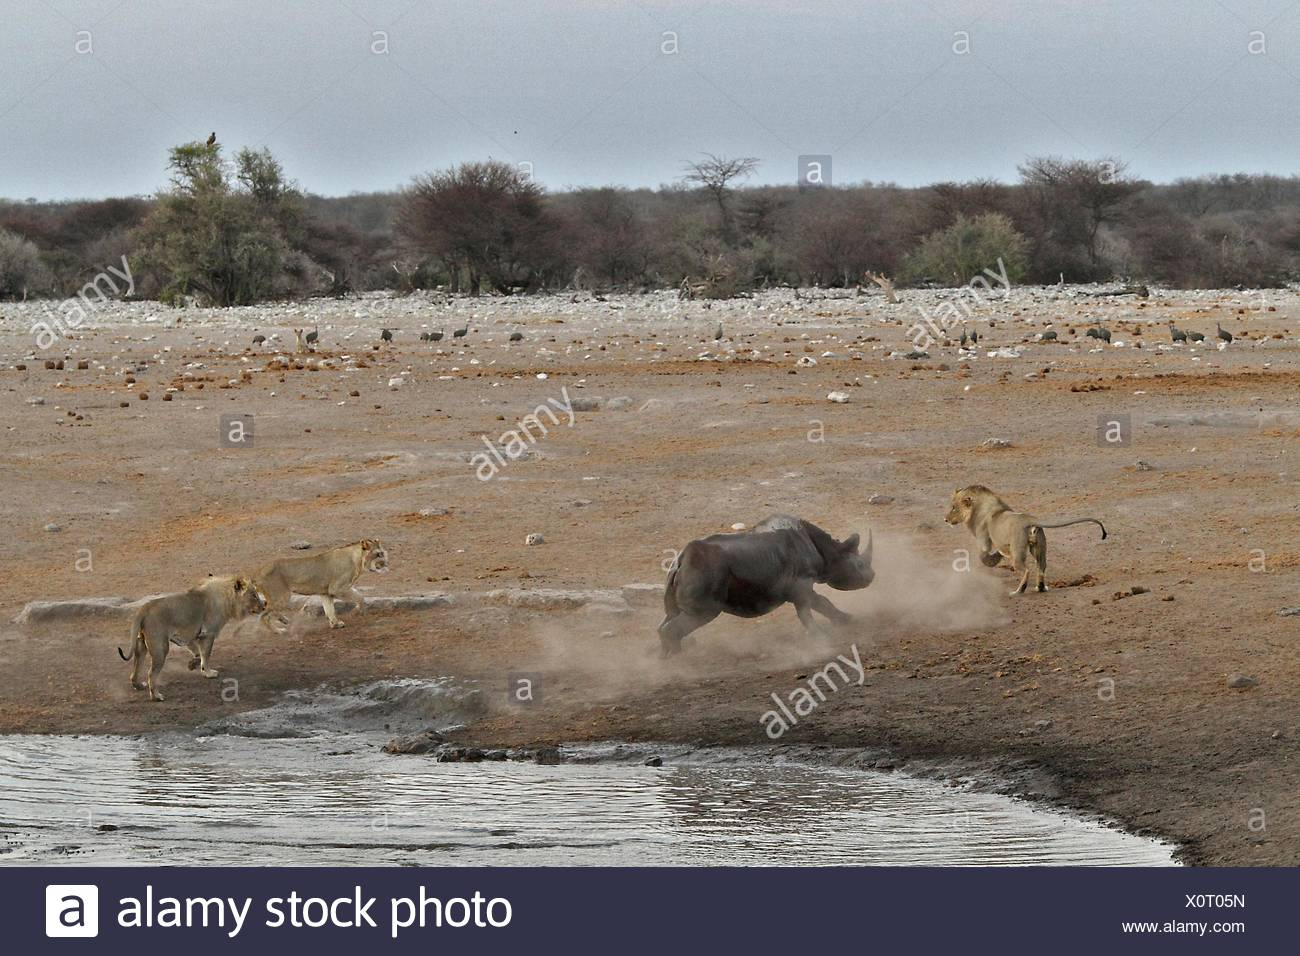 This Black Rhino has stumbled into a cavity and tipped into the water point. After many difficulties given the sheer submerged - Stock Image